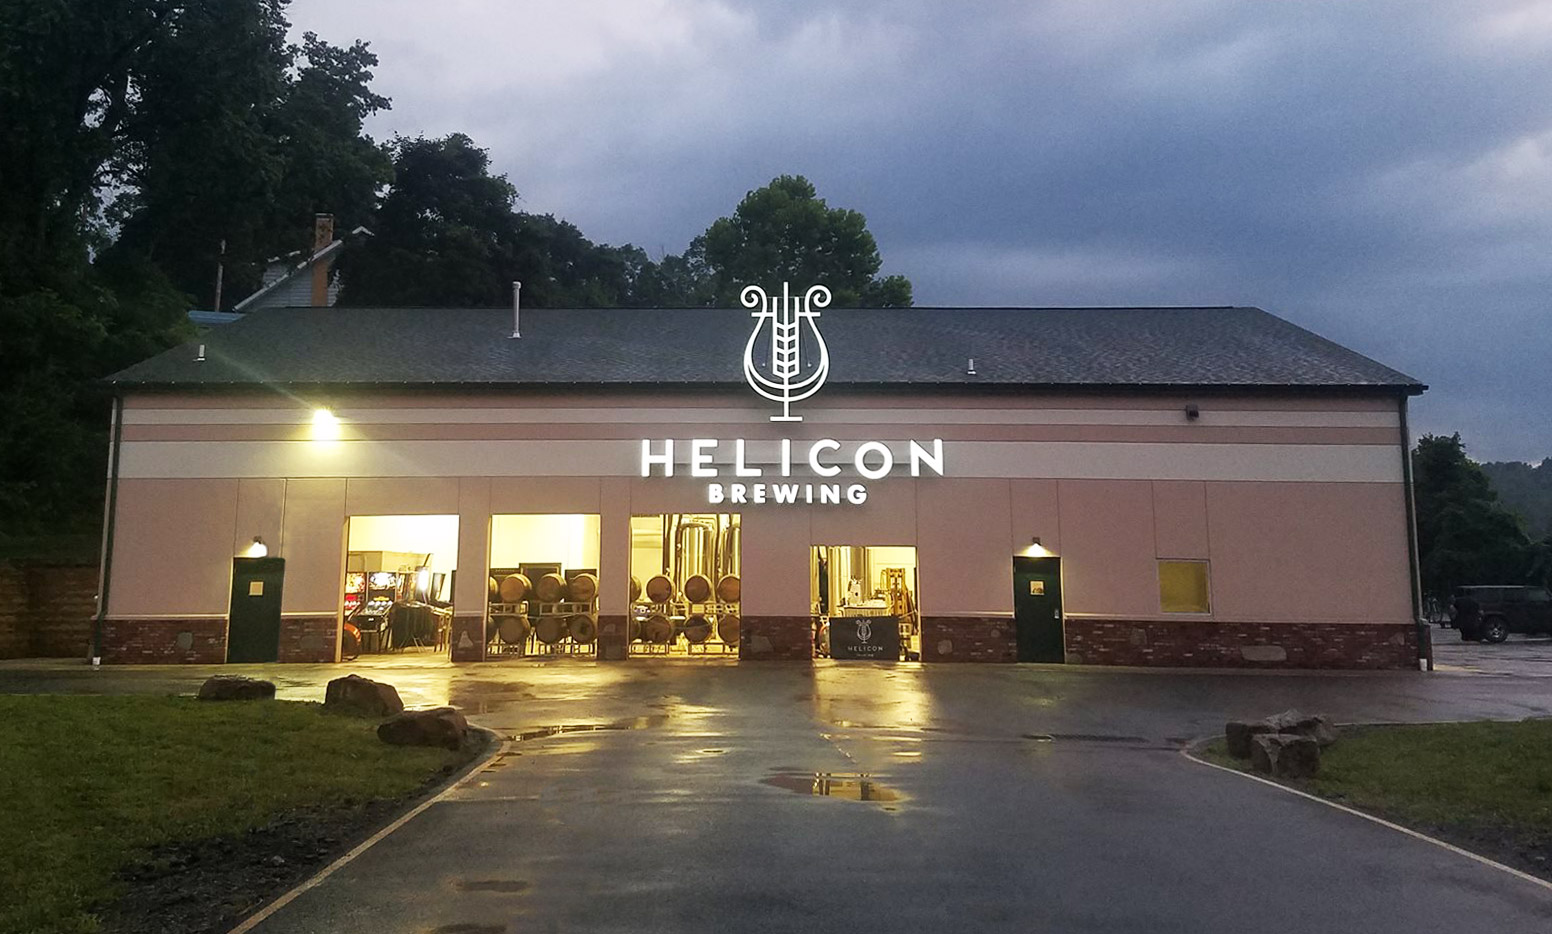 Heliconsign